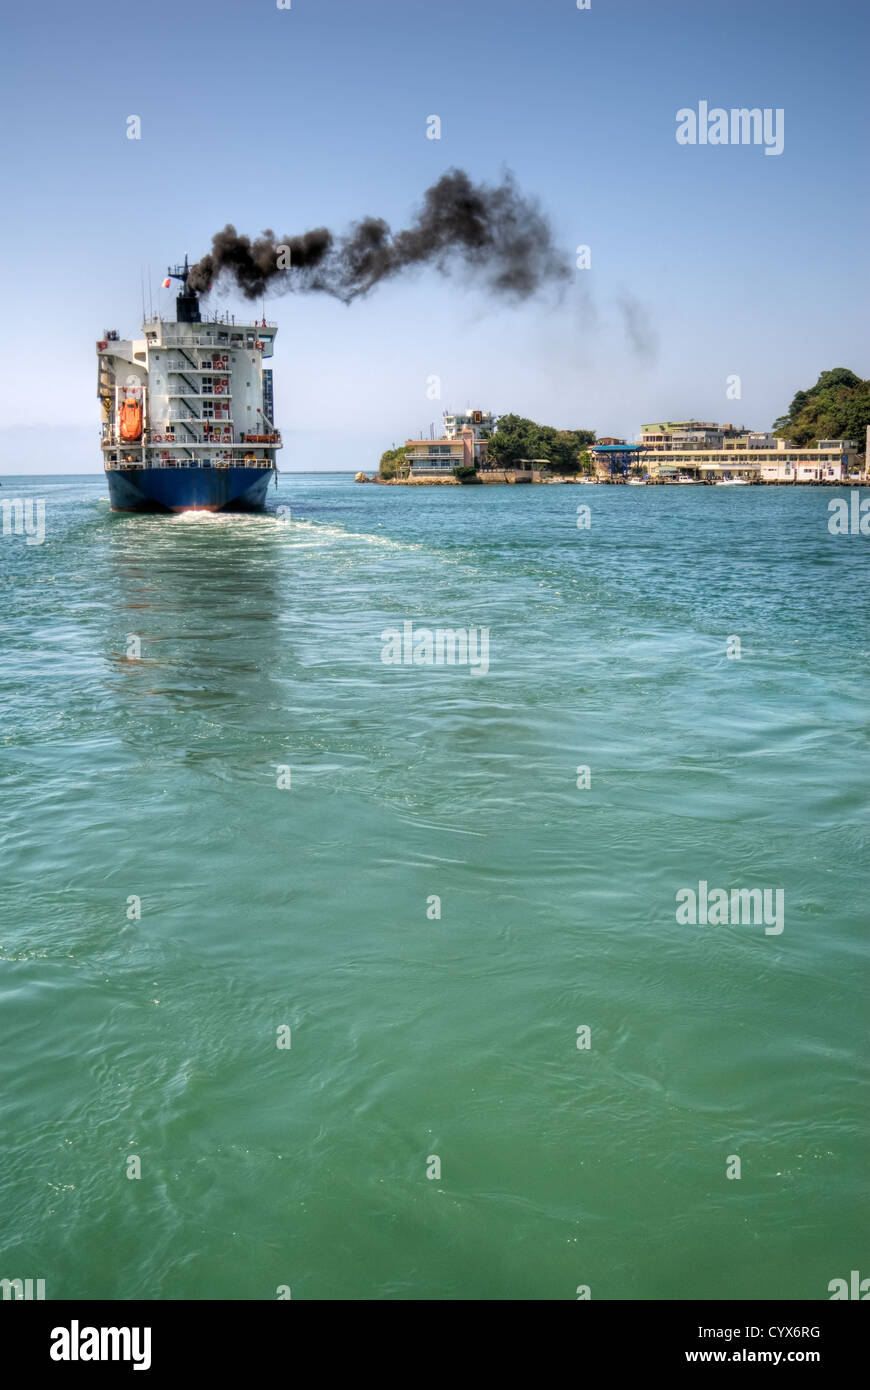 Freighter navigate the port with black smoke of sea in Kaohsiung, Taiwan. - Stock Image